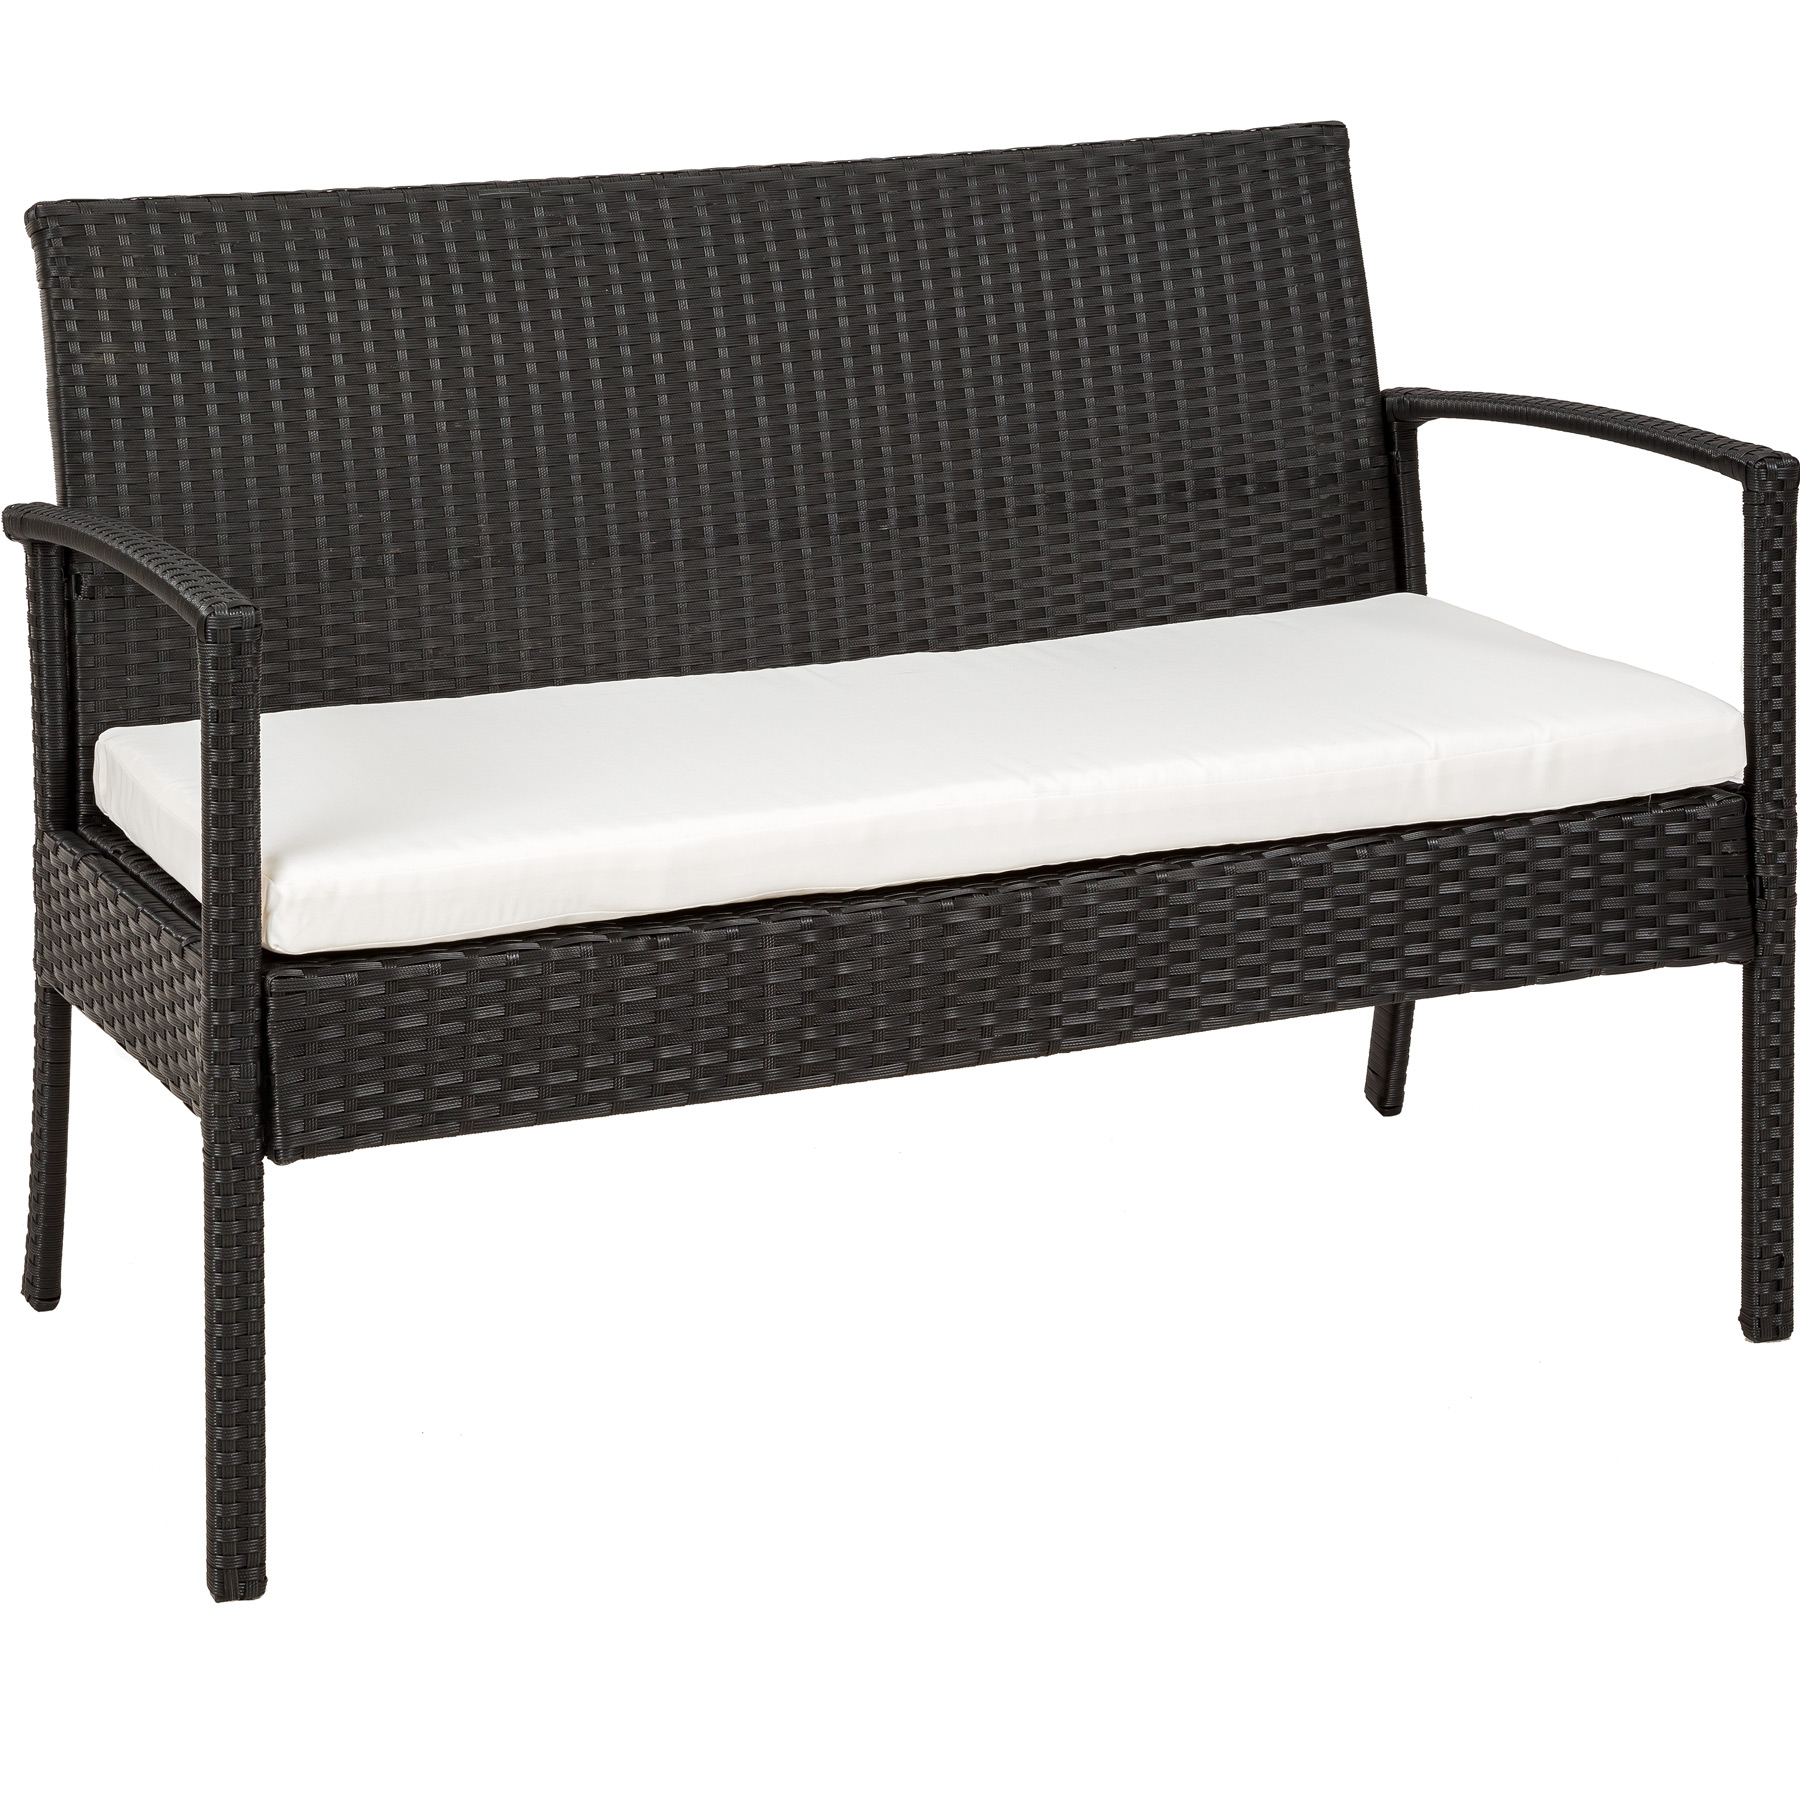 Poly Rattan Garden Furniture 2 Chairs Bench Table Set Outdoor Wicker Patio Black Ebay